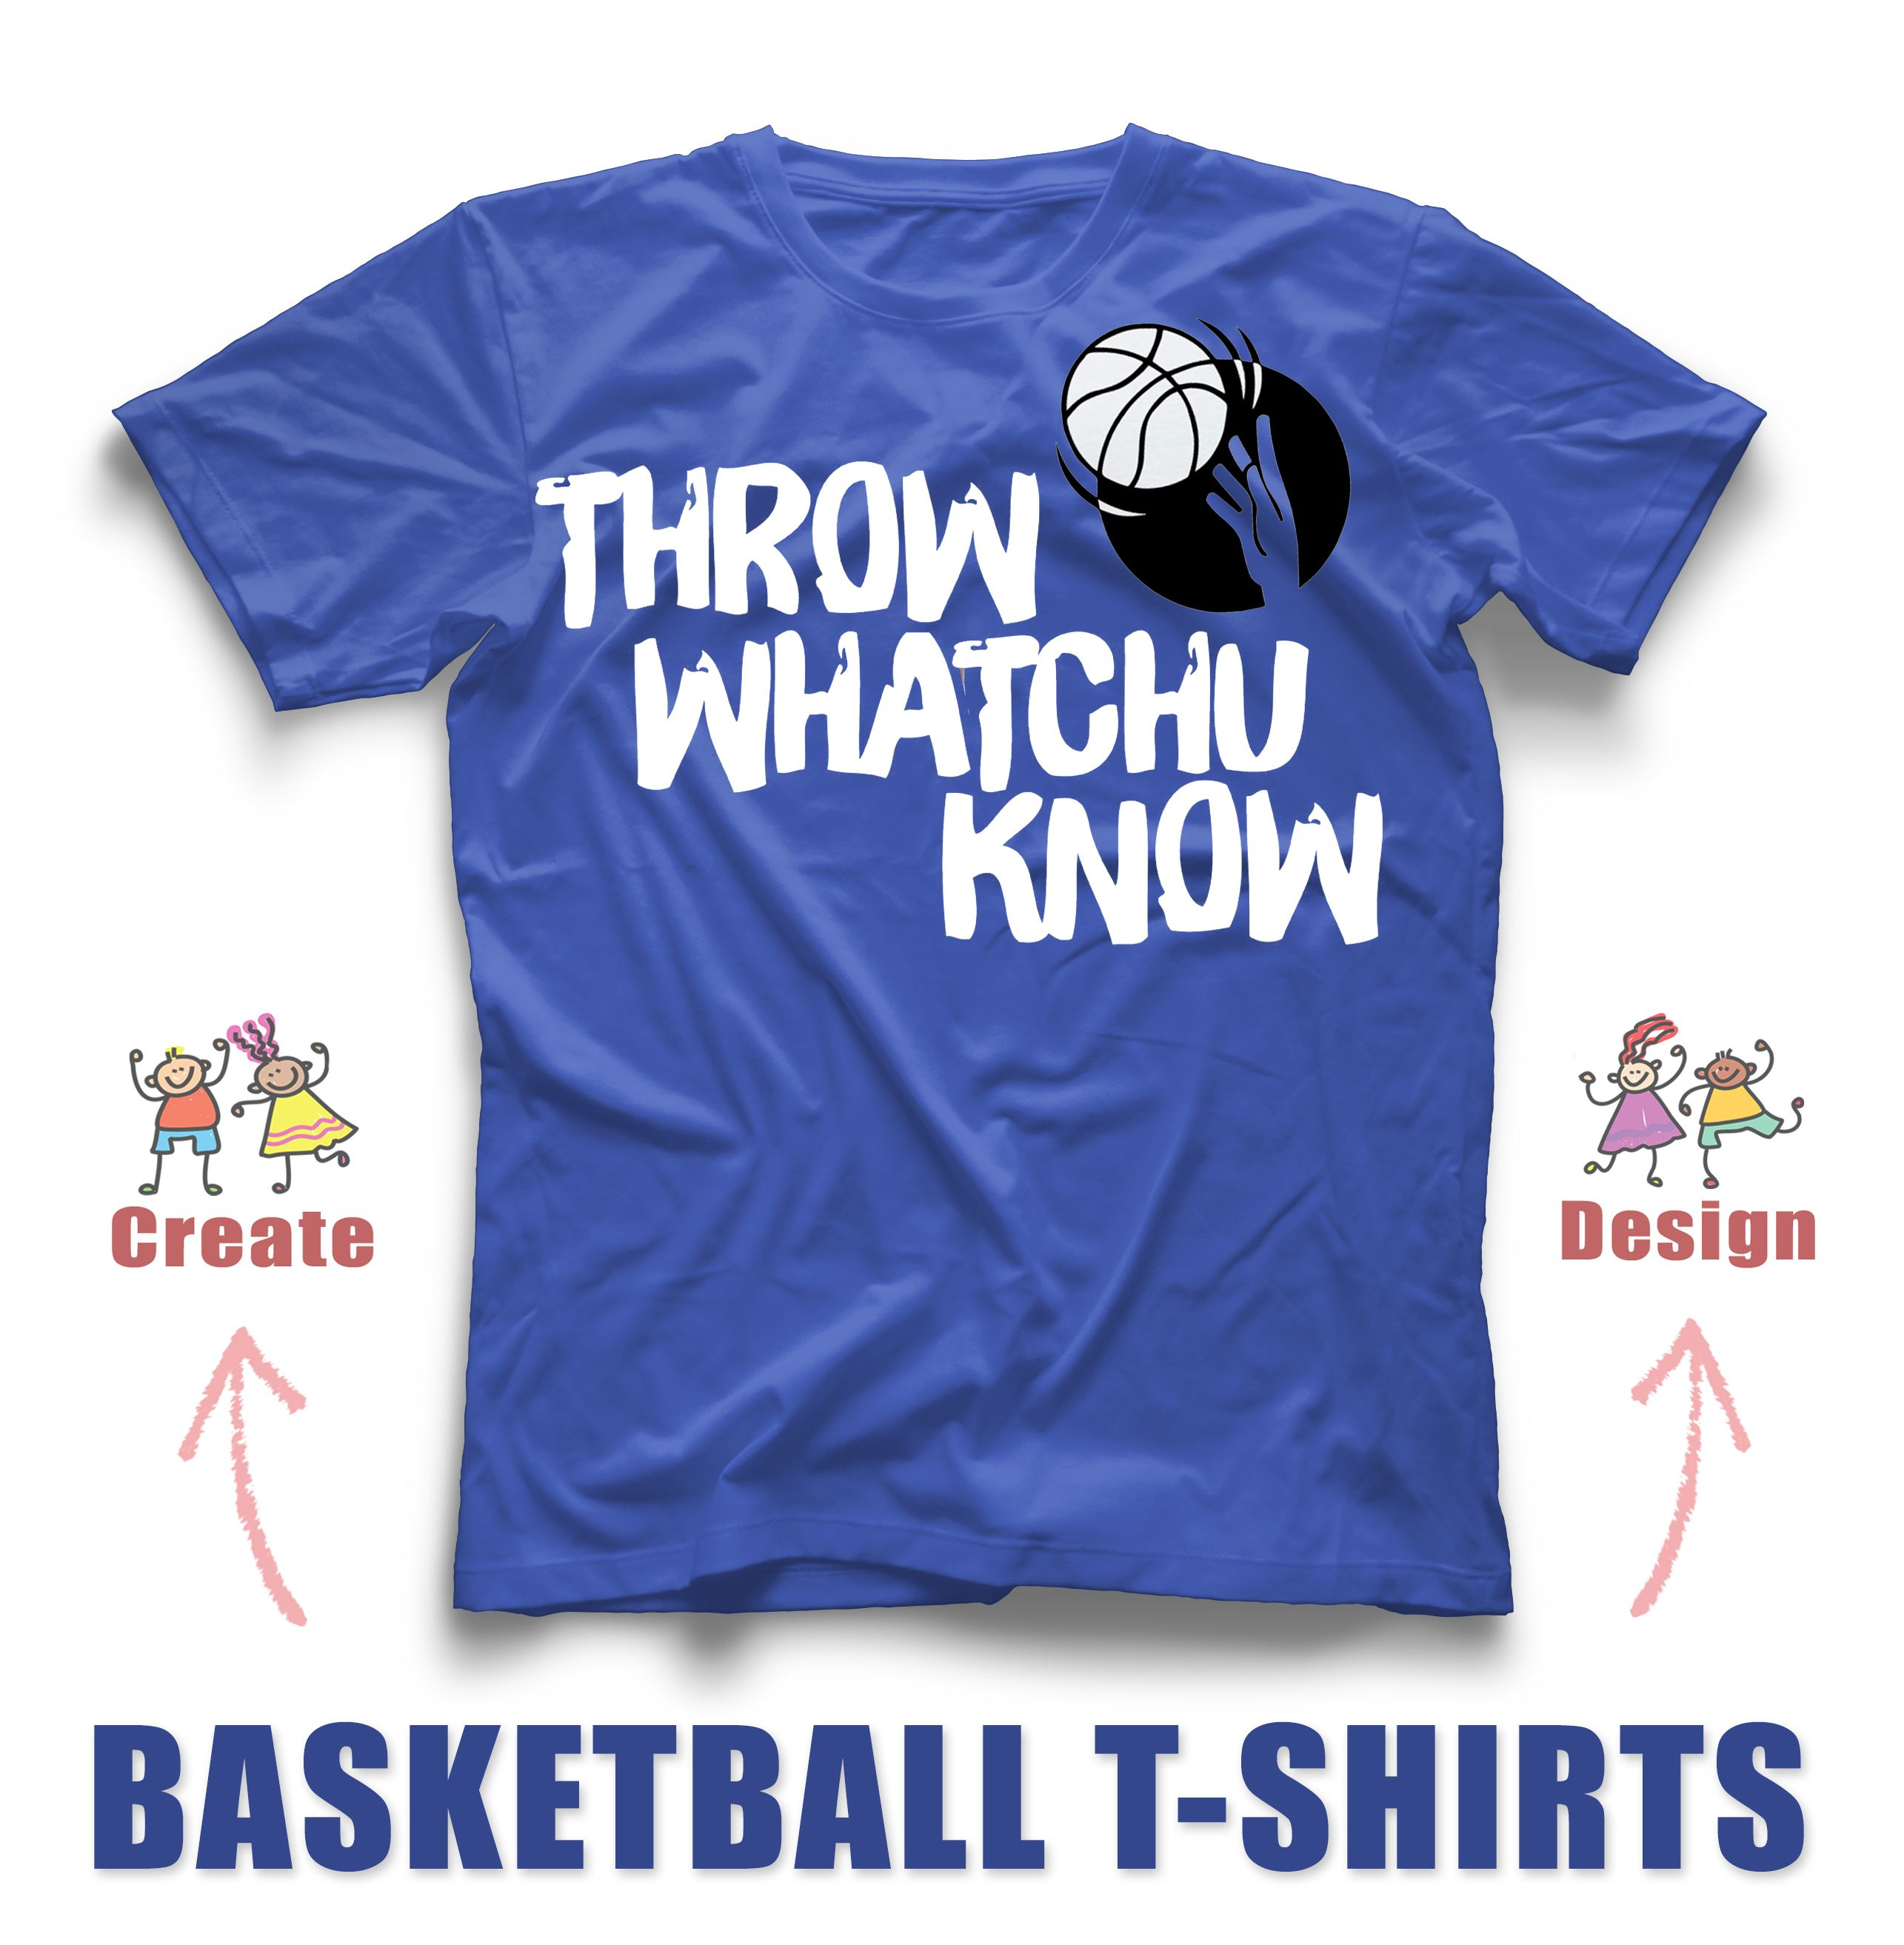 Basketball Custom T Shirt Design Idea Create And Design Yours With